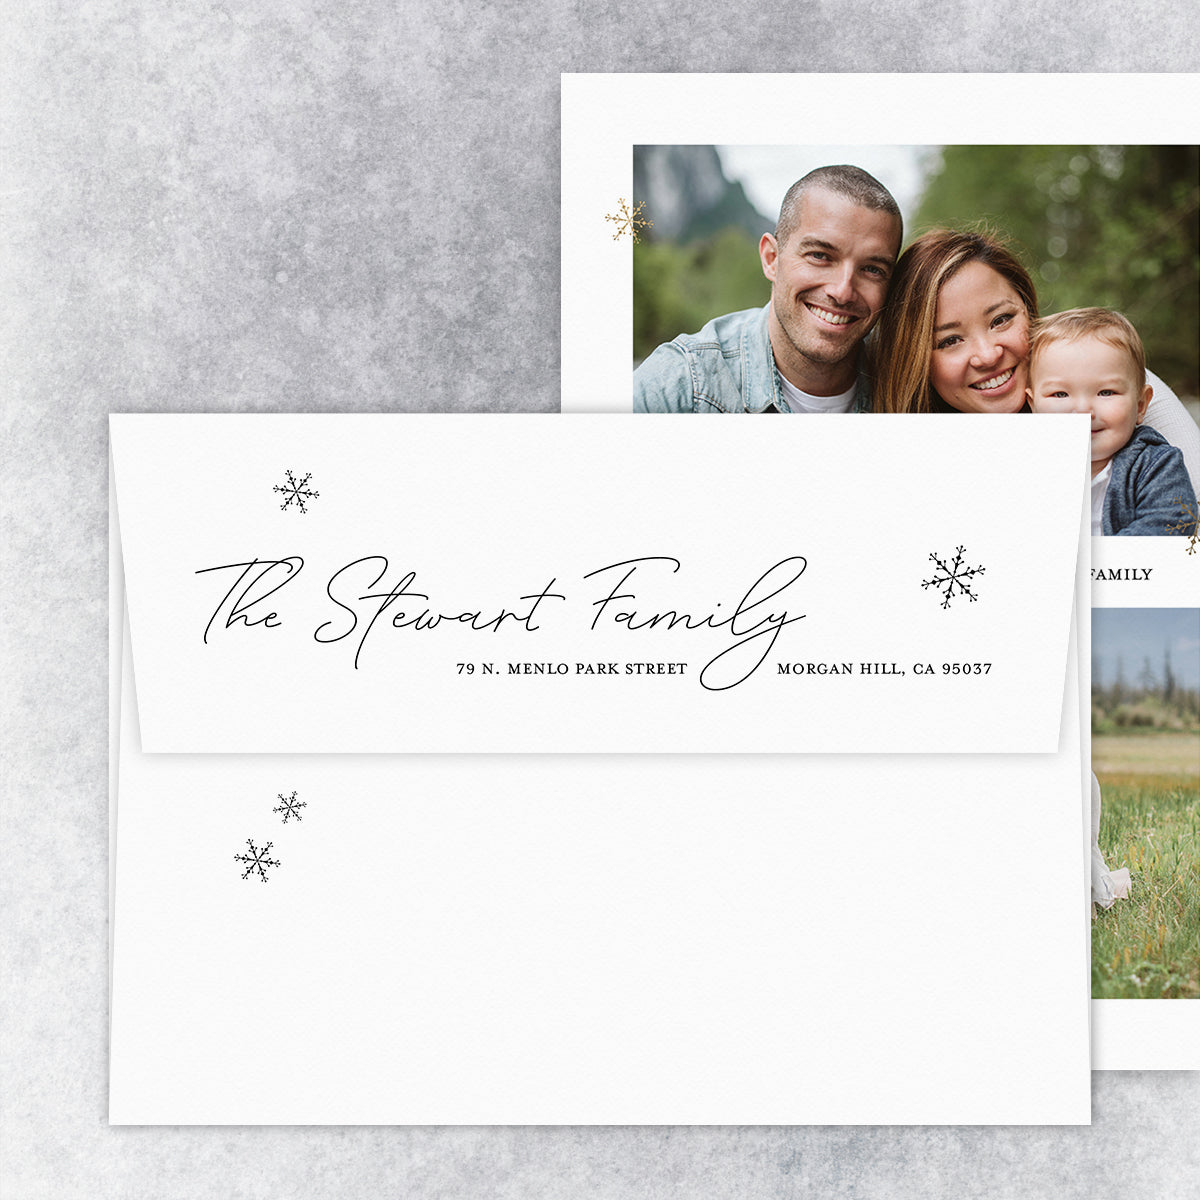 Matching Return Envelopes by Fine Moments